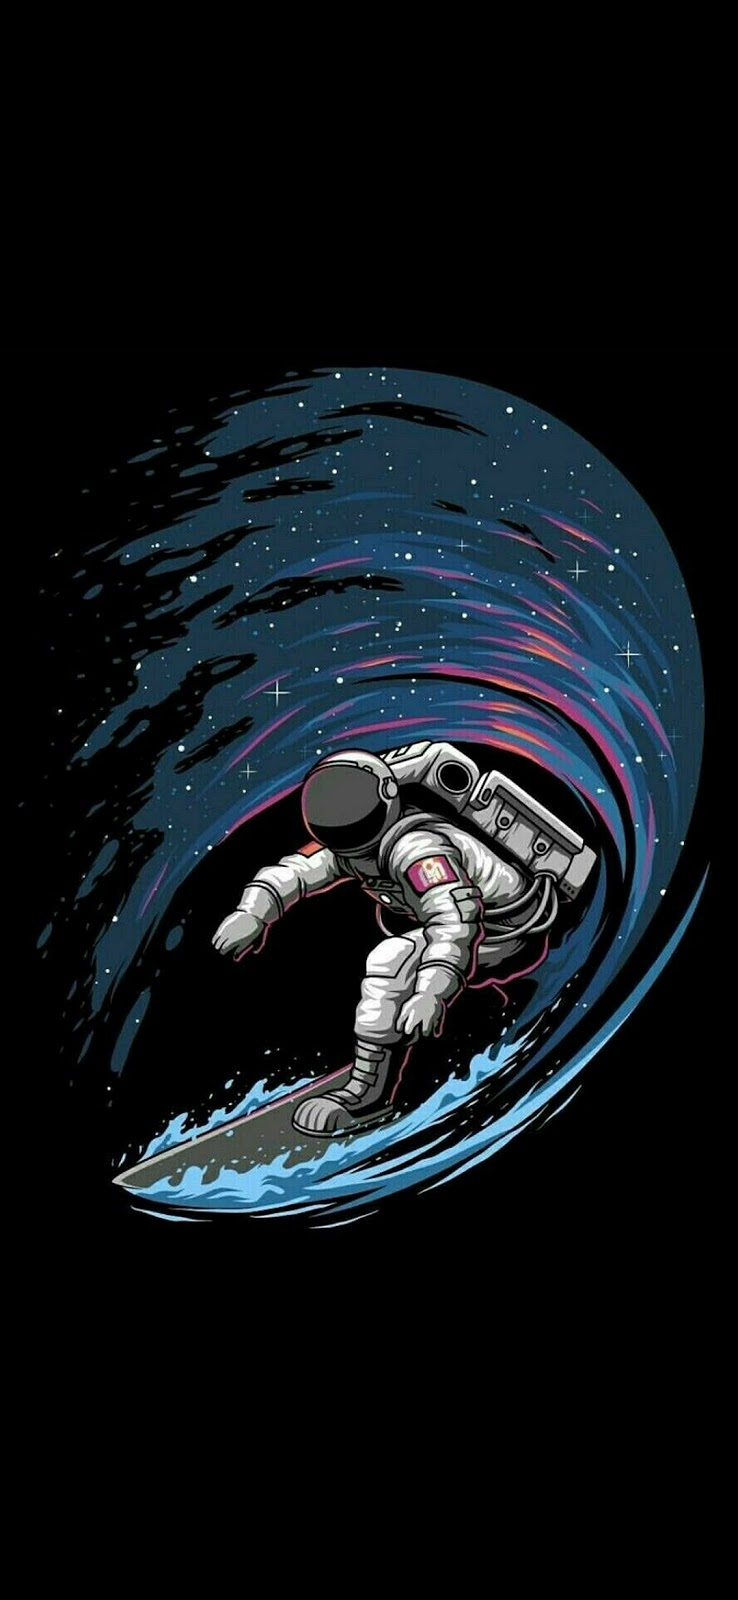 Astronaut Surfing in space Mobile Wallpaper